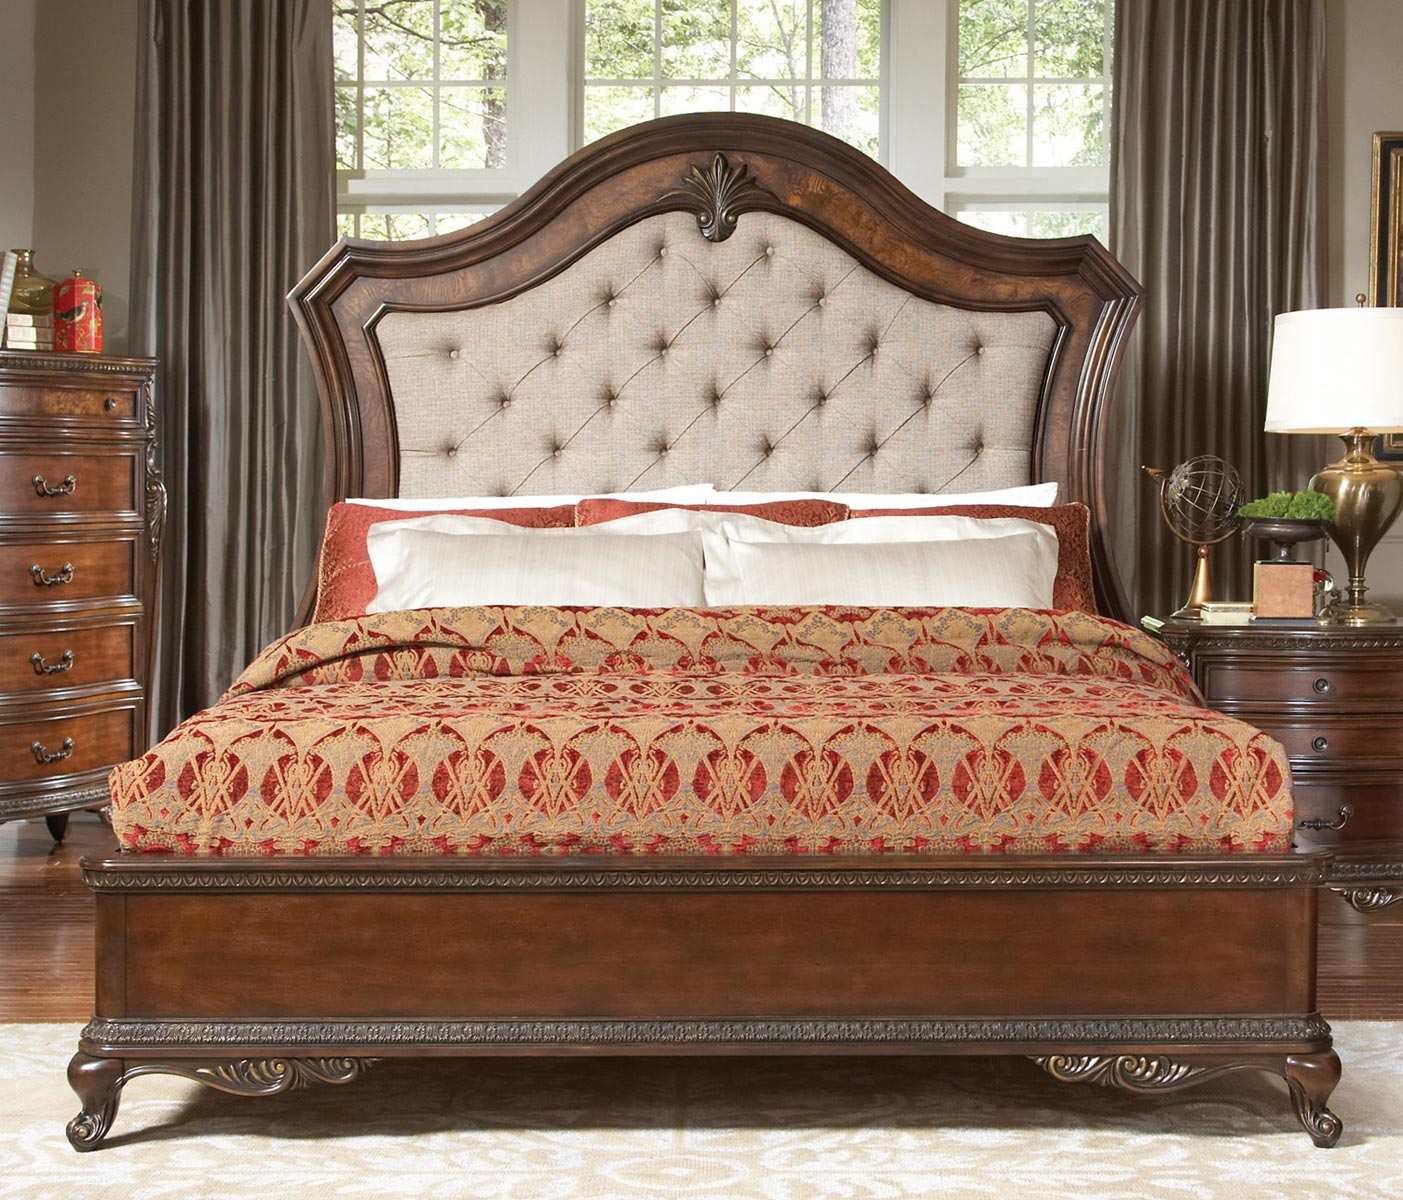 Homelegance Bonaventure Park Upholstered Bed - Warm Cherry